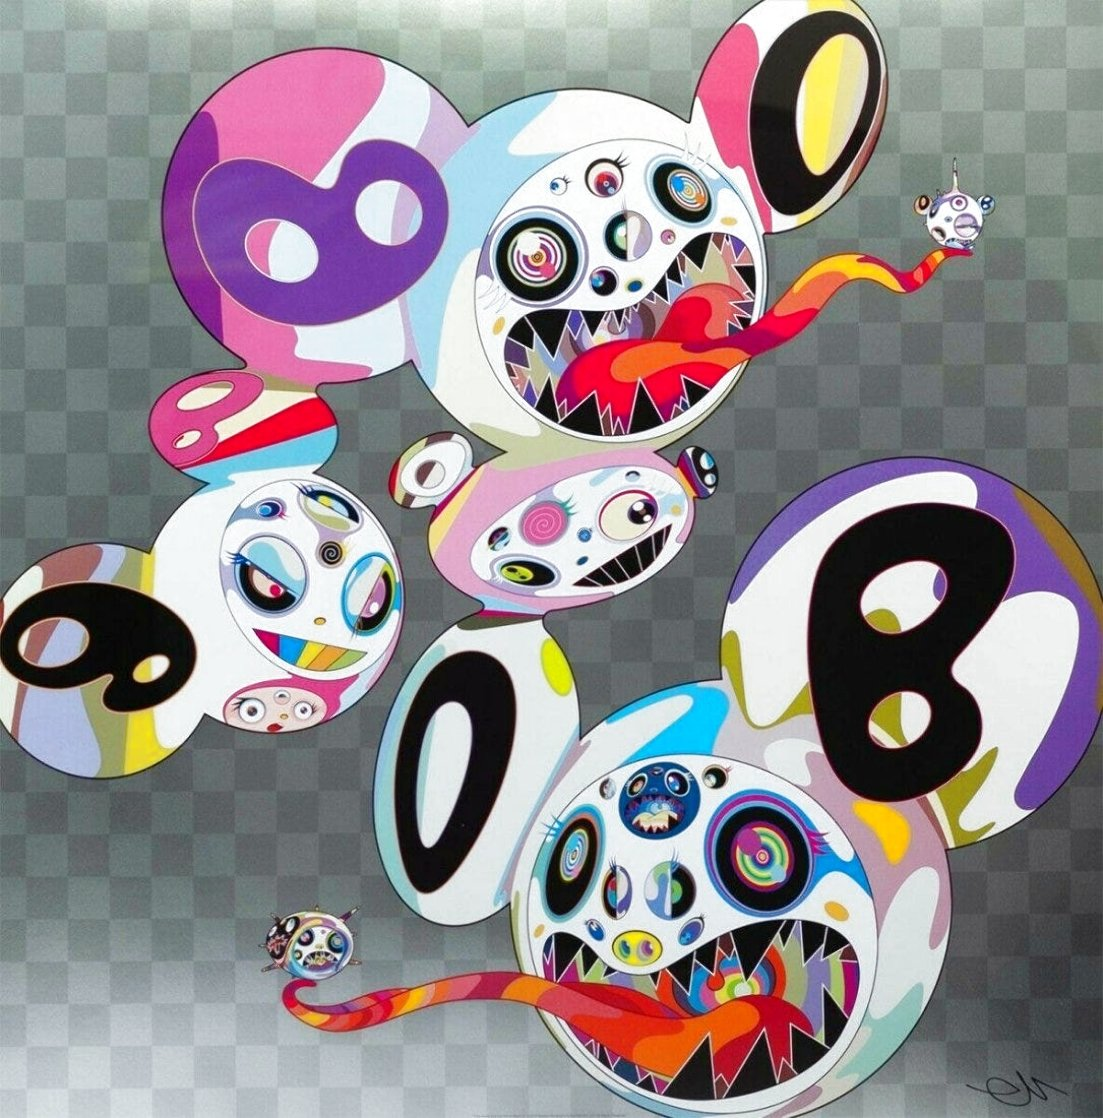 In This World And The Next Beyond Rest 2013 Limited Edition Print by Takashi Murakami